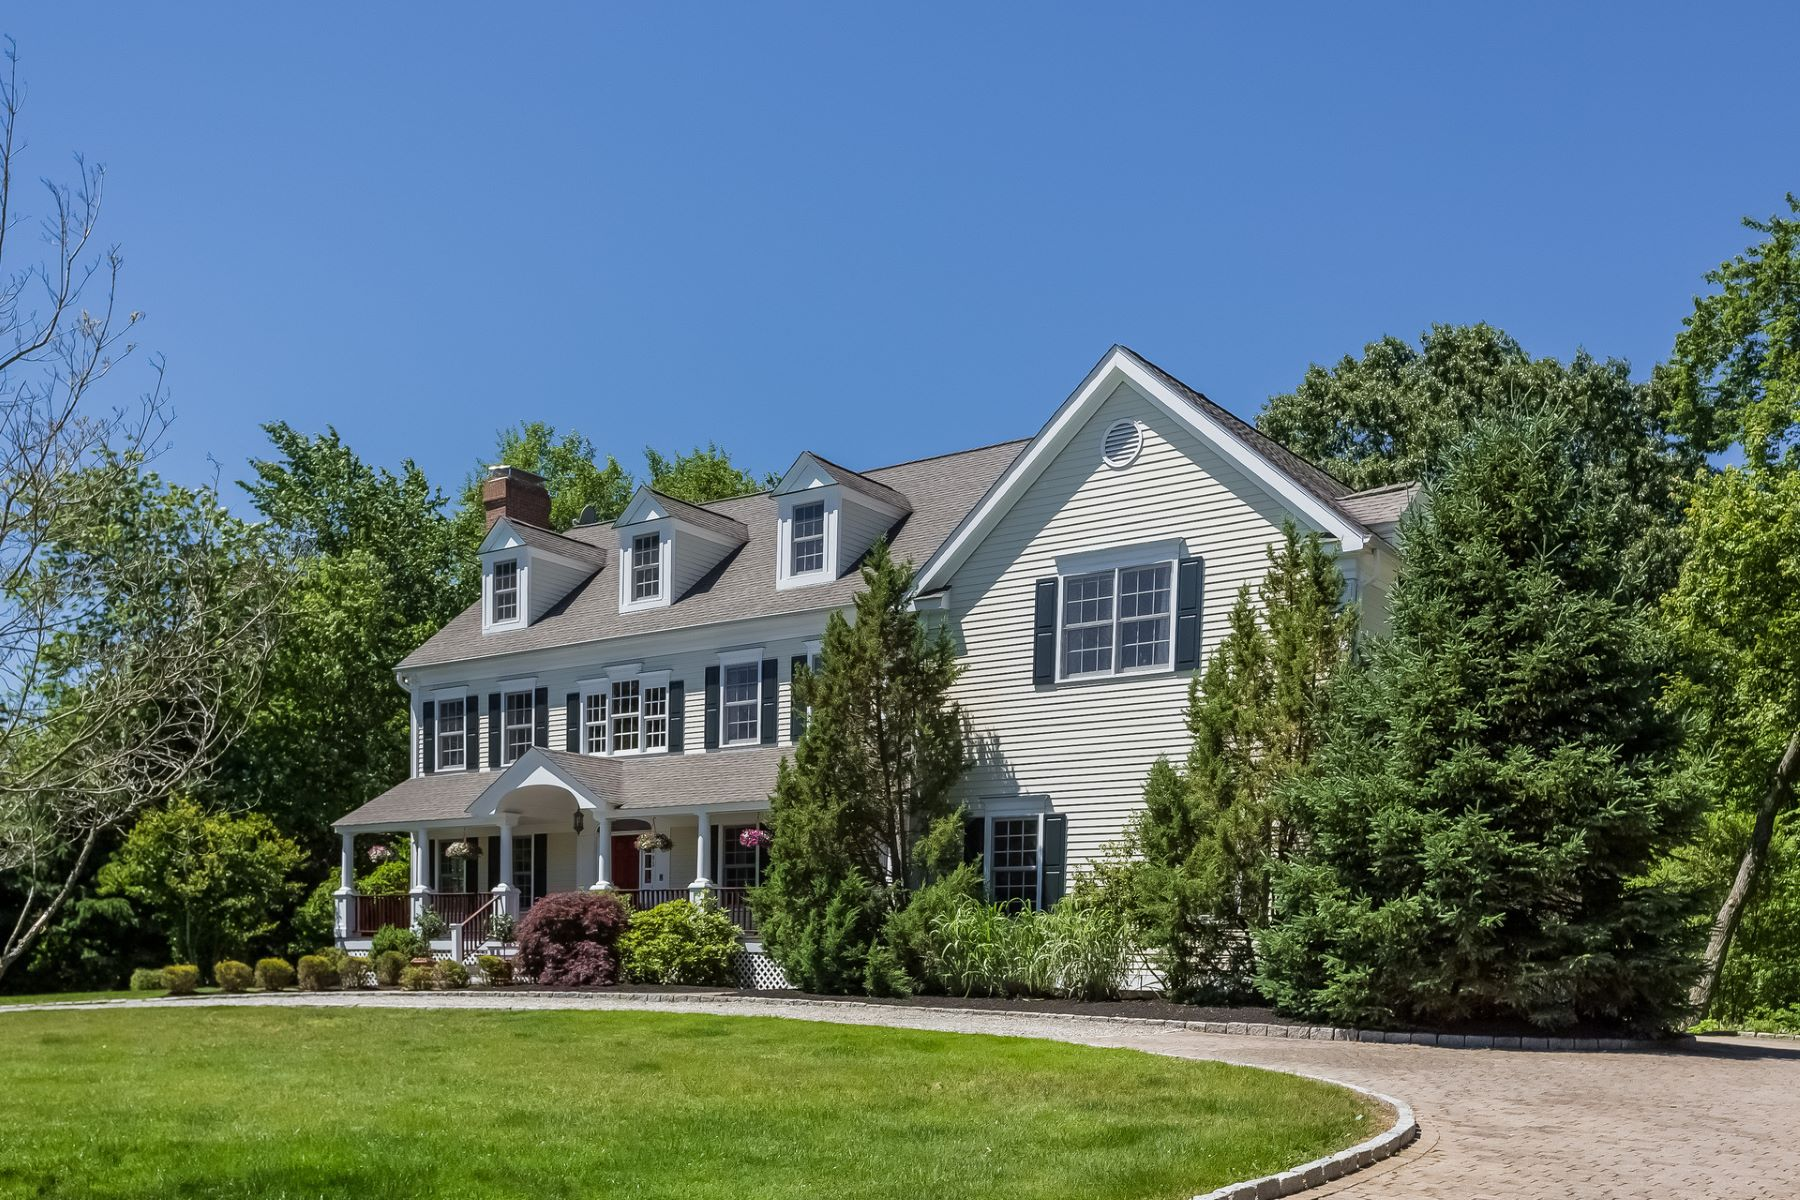 Maison unifamiliale pour l Vente à Spacious and Welcoming 193 Sturges Ridge Road Wilton, Connecticut, 06897 États-Unis